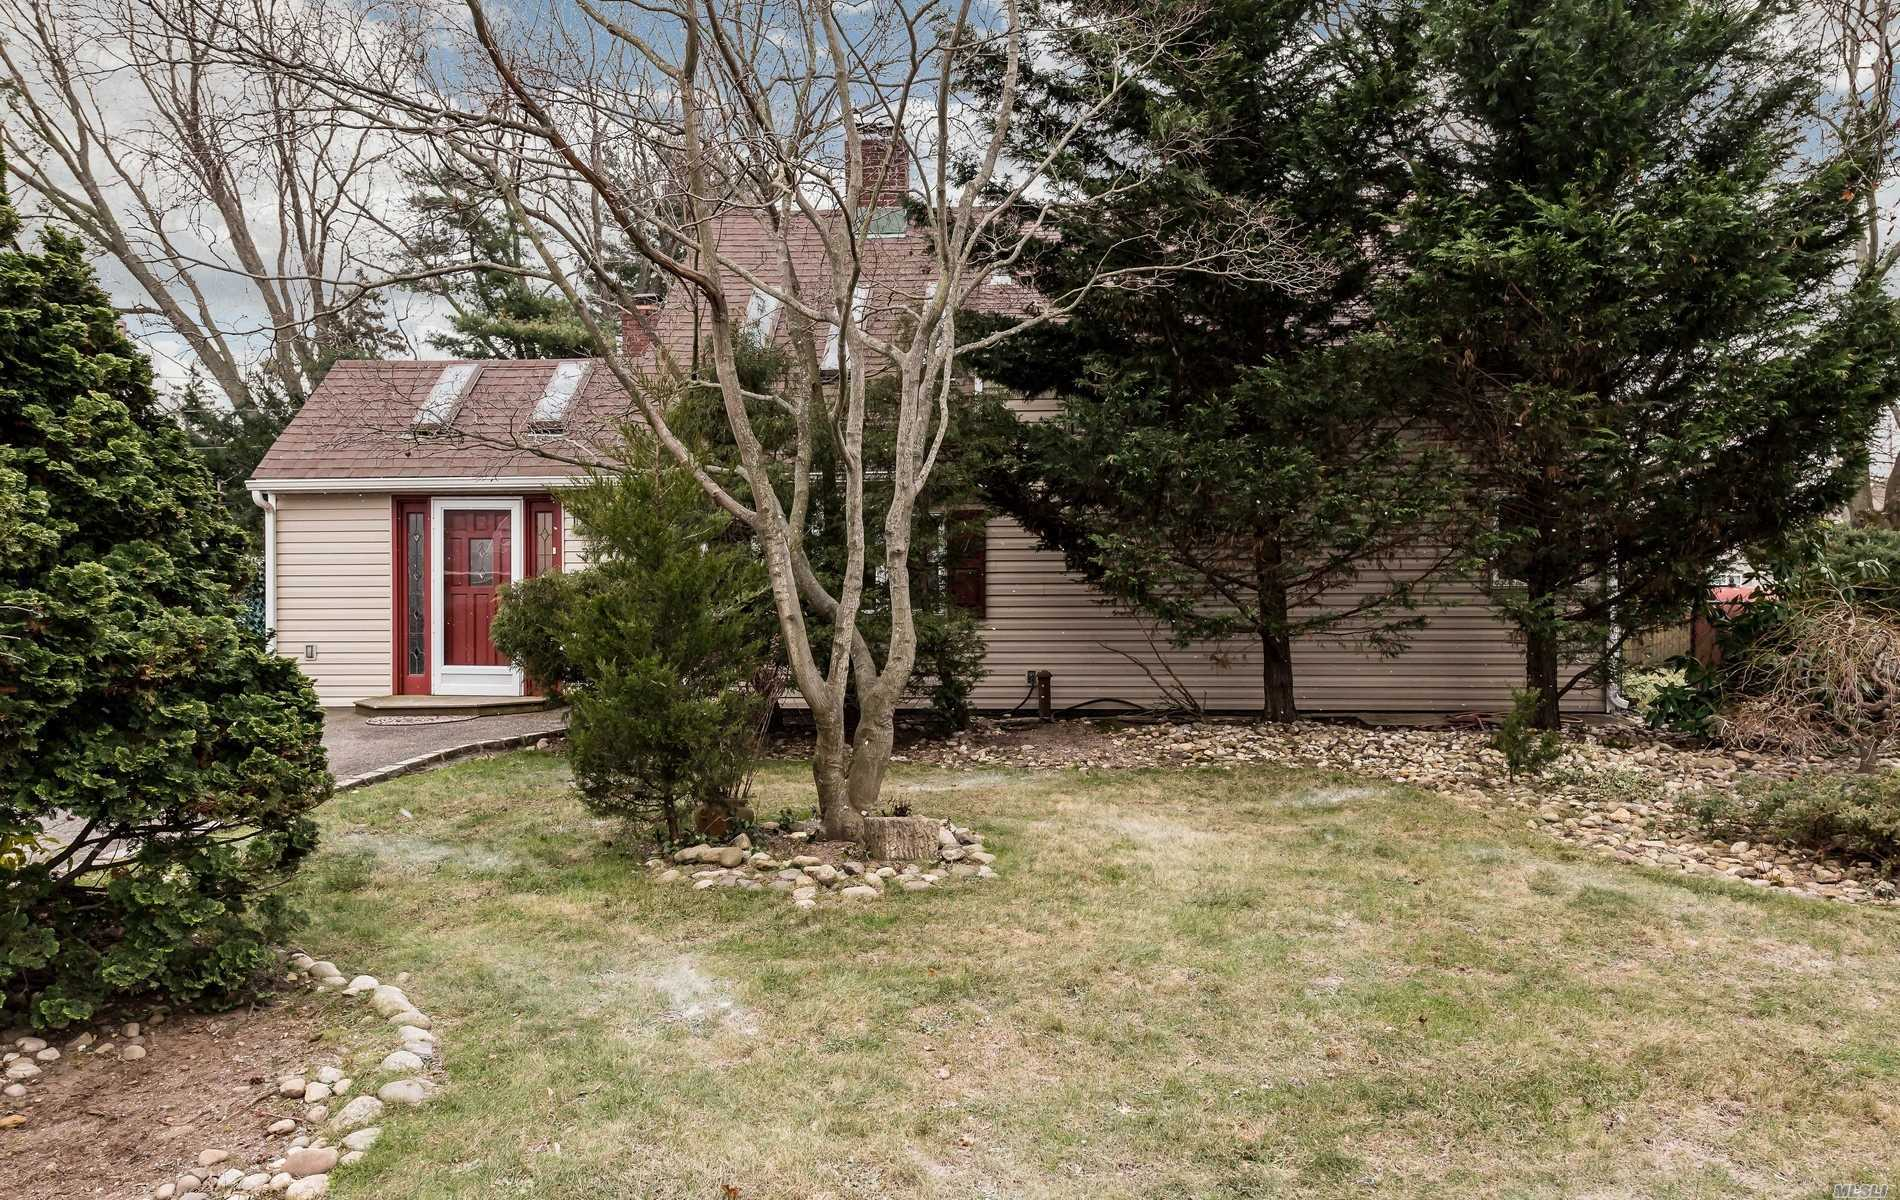 Absolutely Magnificent Expanded Ranch Sitting On A Huge Property With Many Updates. Large Entry W/Cathedral Ceiling And Skylights To An Inviting Fdr/Fpl, Beautiful Lr/Fpl, Eik With Cath Ceiling And Skylights, Fbth, 2 Brs. Second Floor Has Landing Area Looking Over The Kitchen, Large Br, Br, Fbth. Huge Backyard! Must See!!!!!